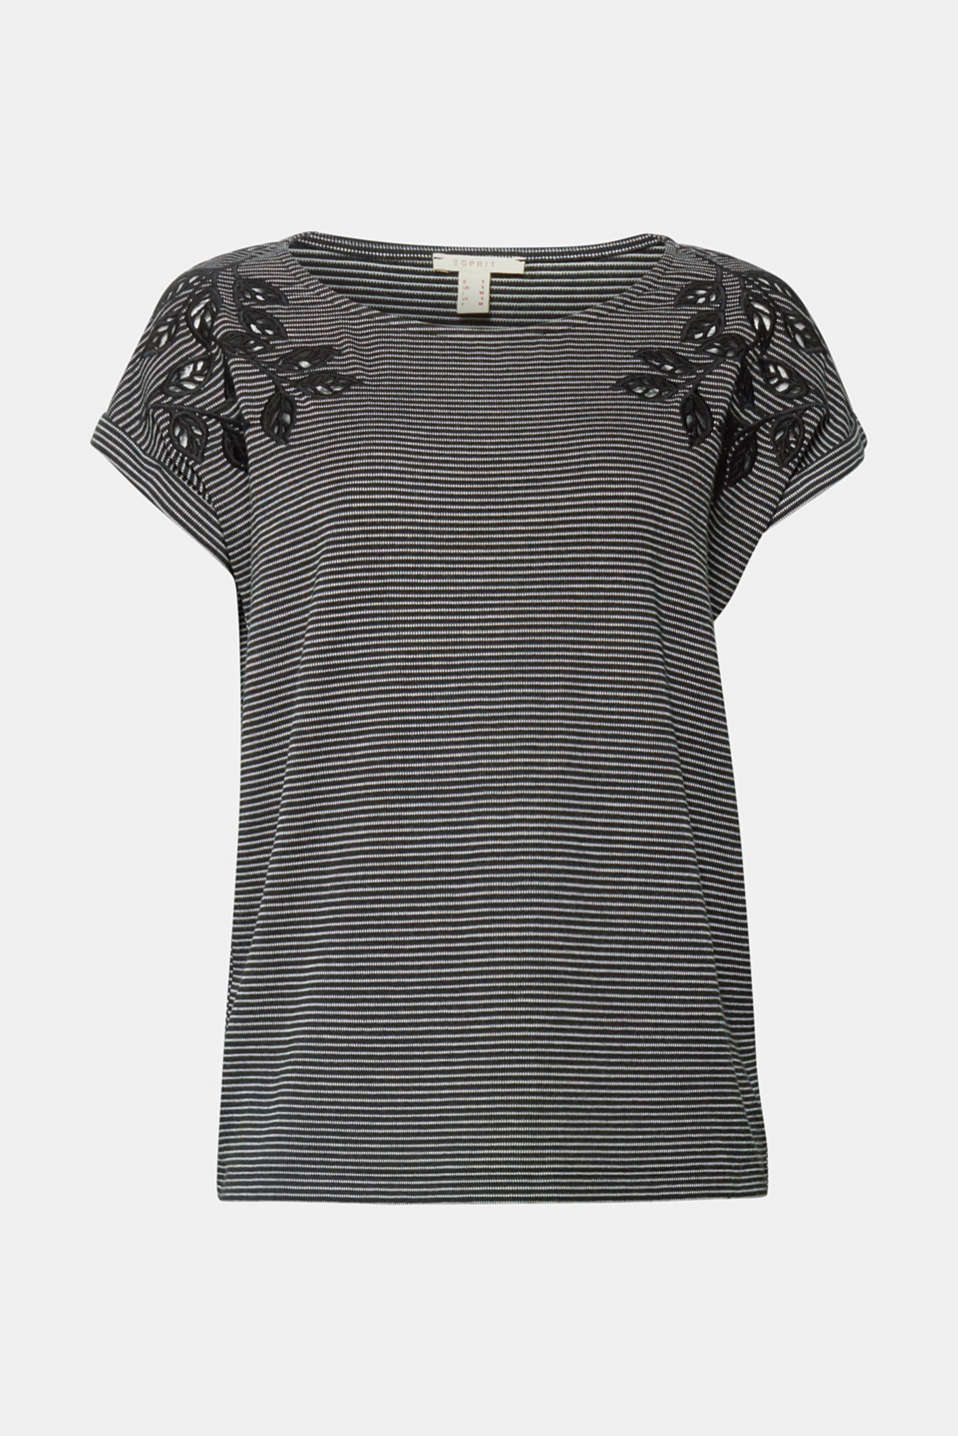 Lots of stripes and lush lace! The combination of classic stripes and airy, floral broderie anglaise makes this jersey T-shirt simply out of this world.